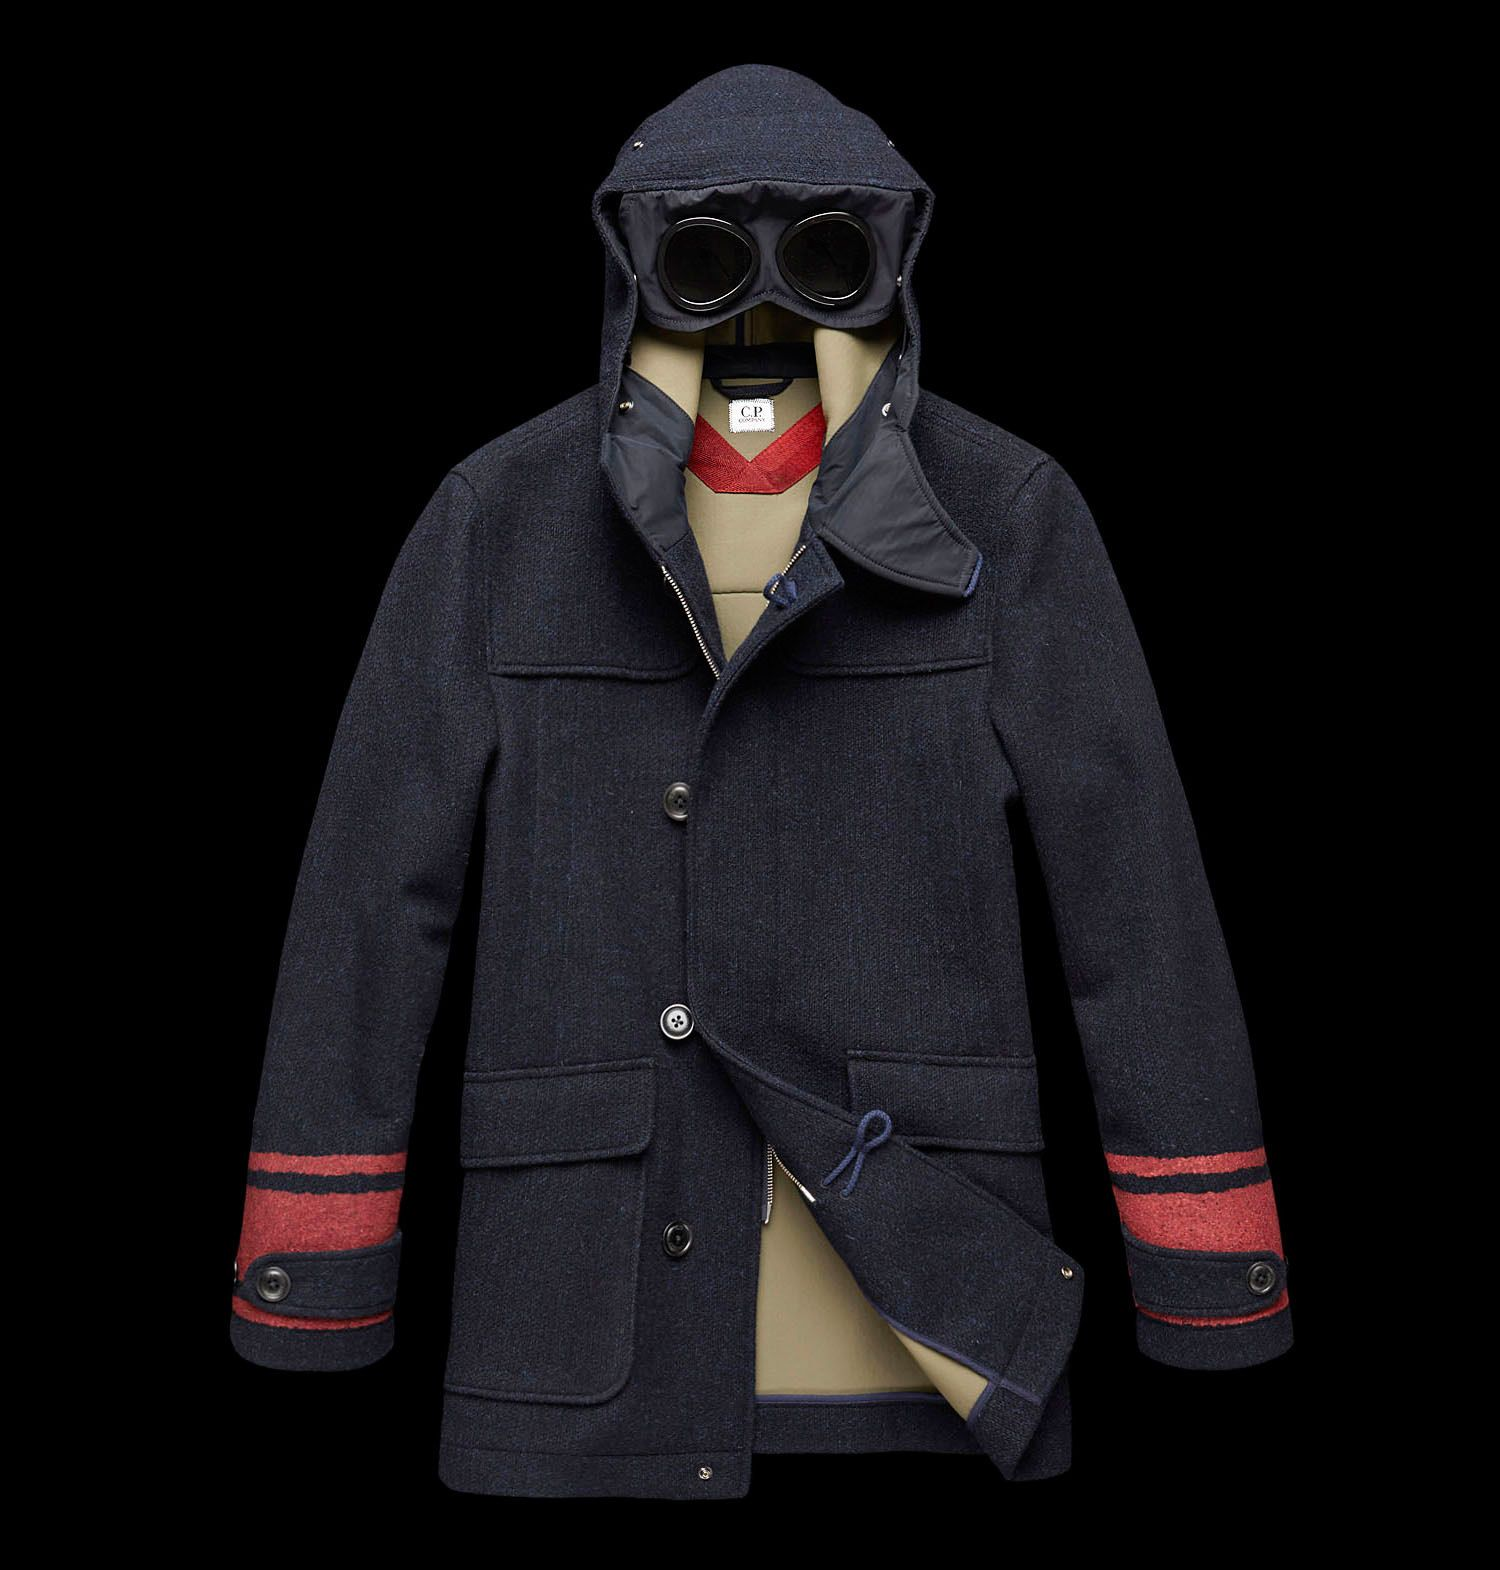 CP Company- CP Company eshop | Outerwear | Pinterest | Duffle coat ...